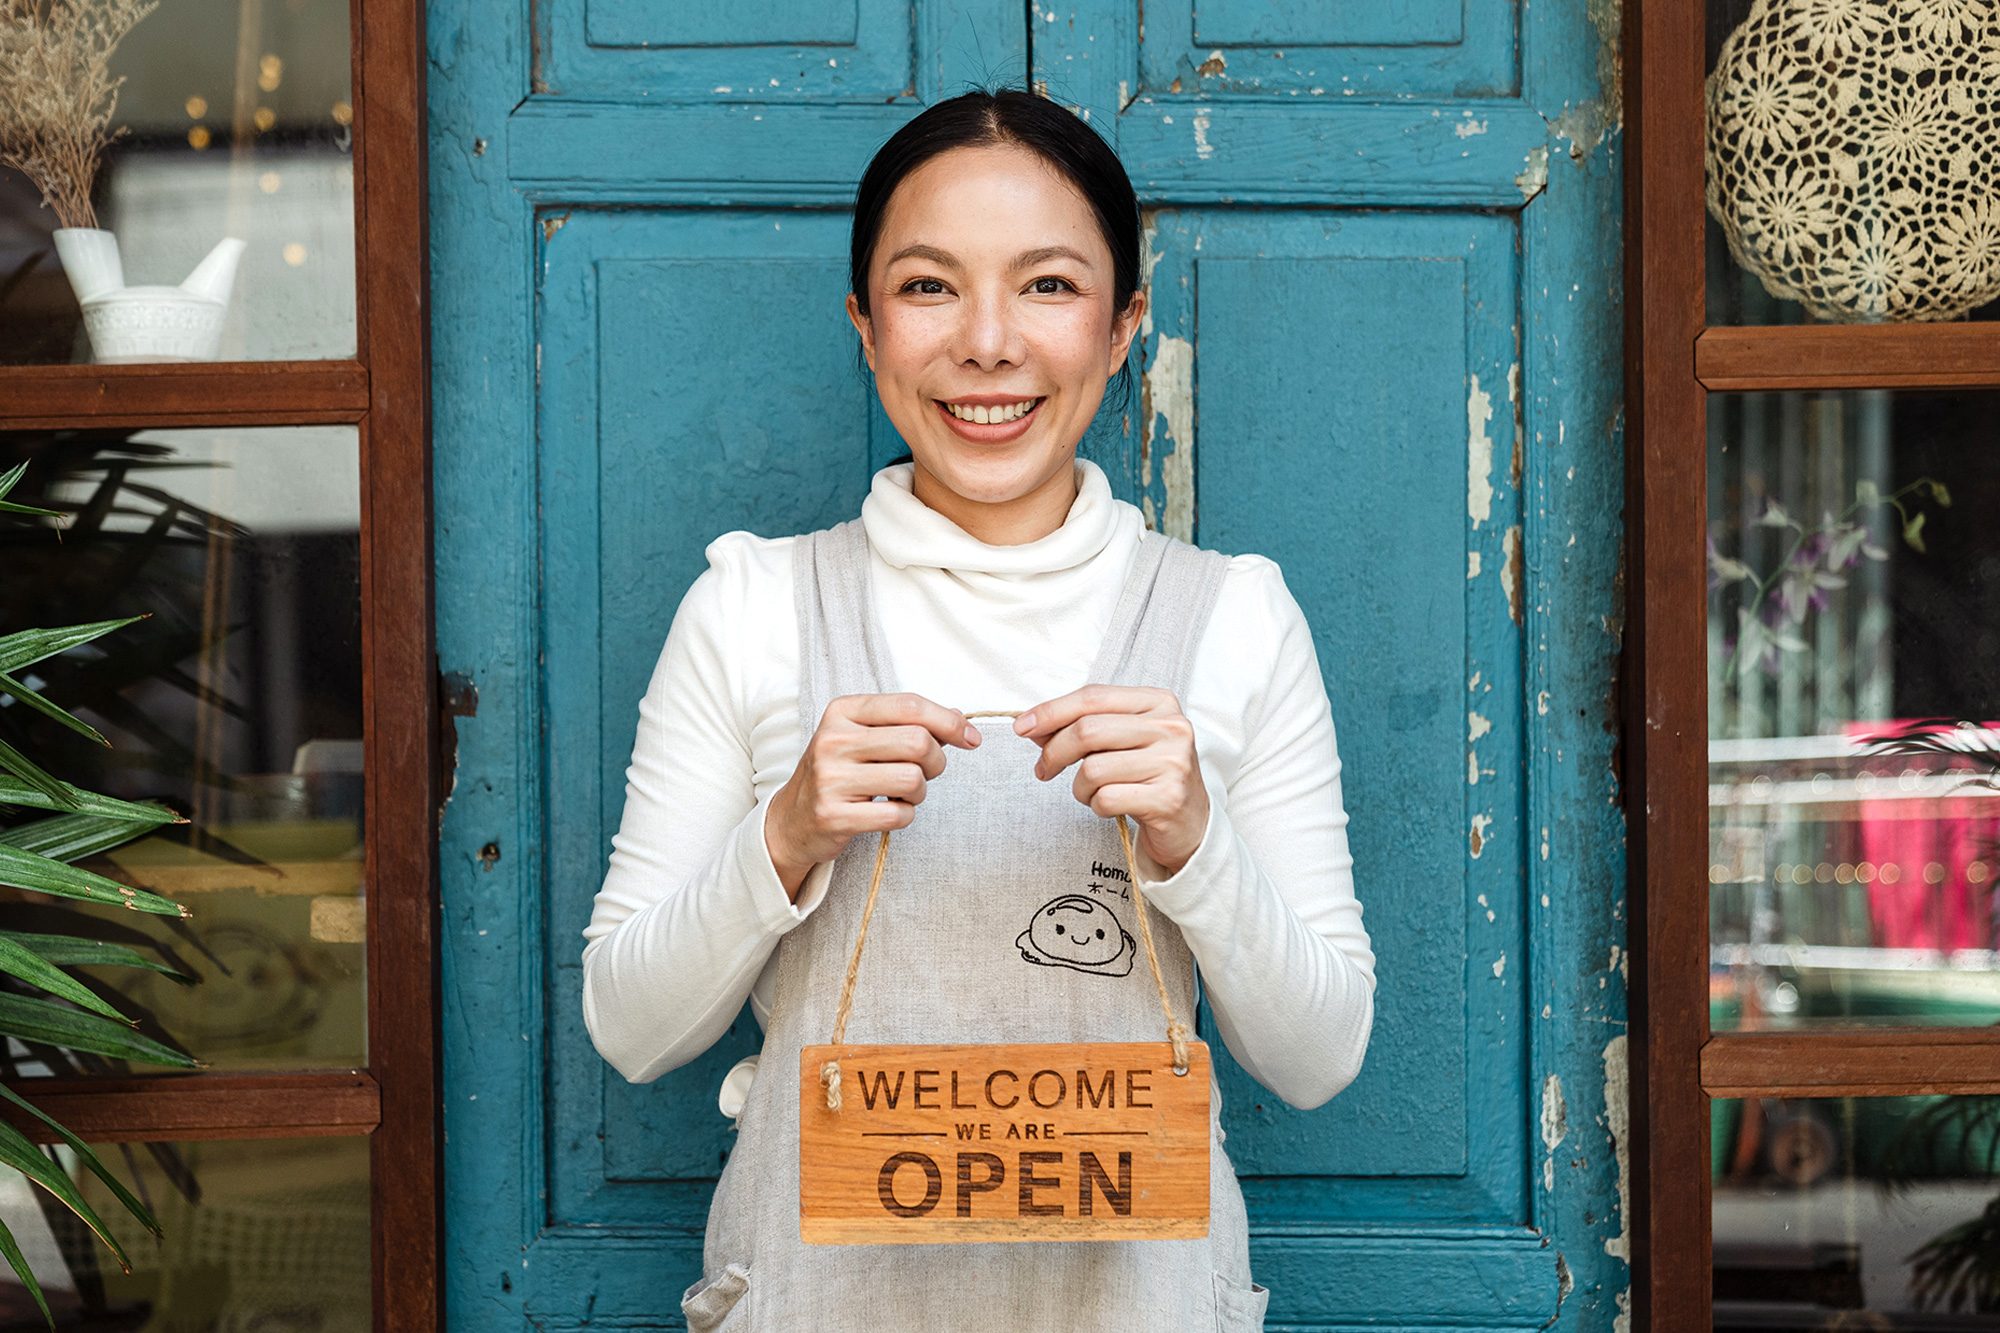 Small business owner holding up a welcome sign